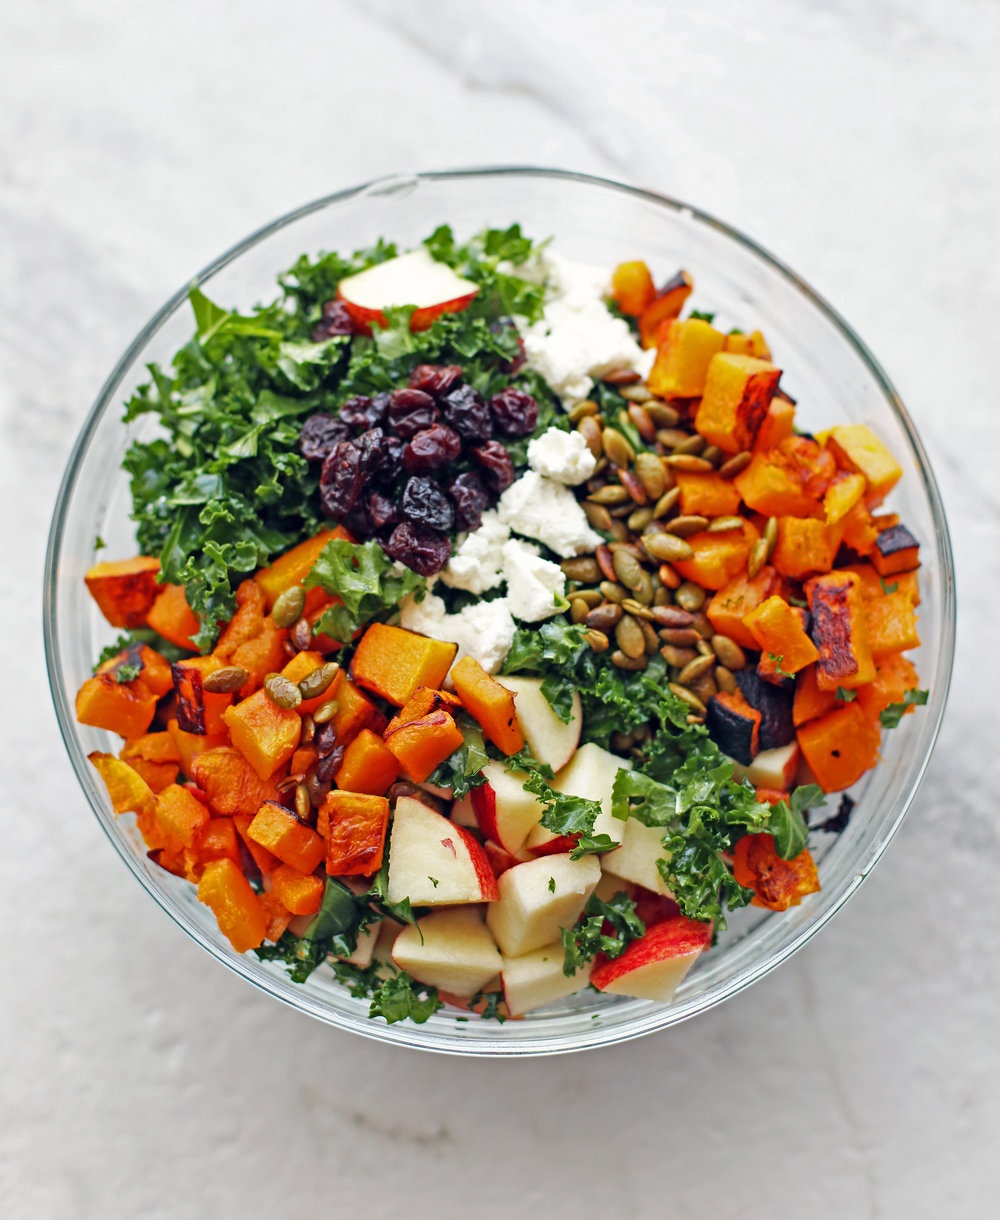 A bowl filled with kale, apples, roasted butternut squash, goat cheese, dried cherries, and pumpkin seeds.